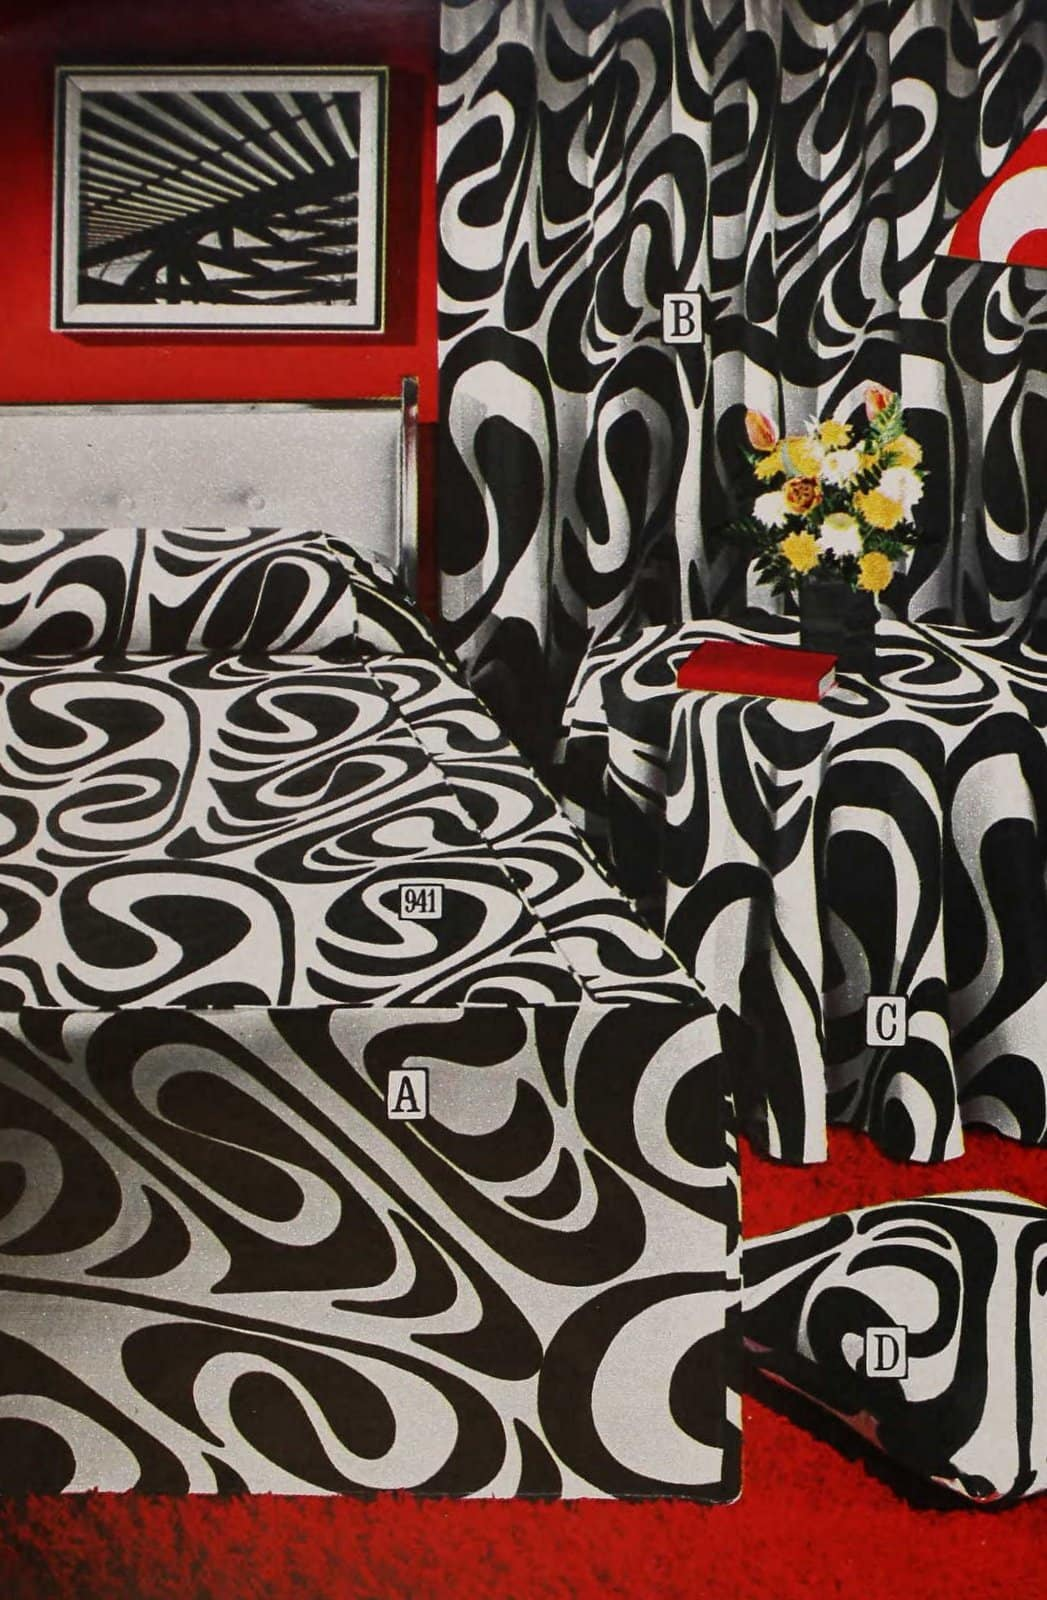 Retro mod psychedelic black and white patterned bedspread